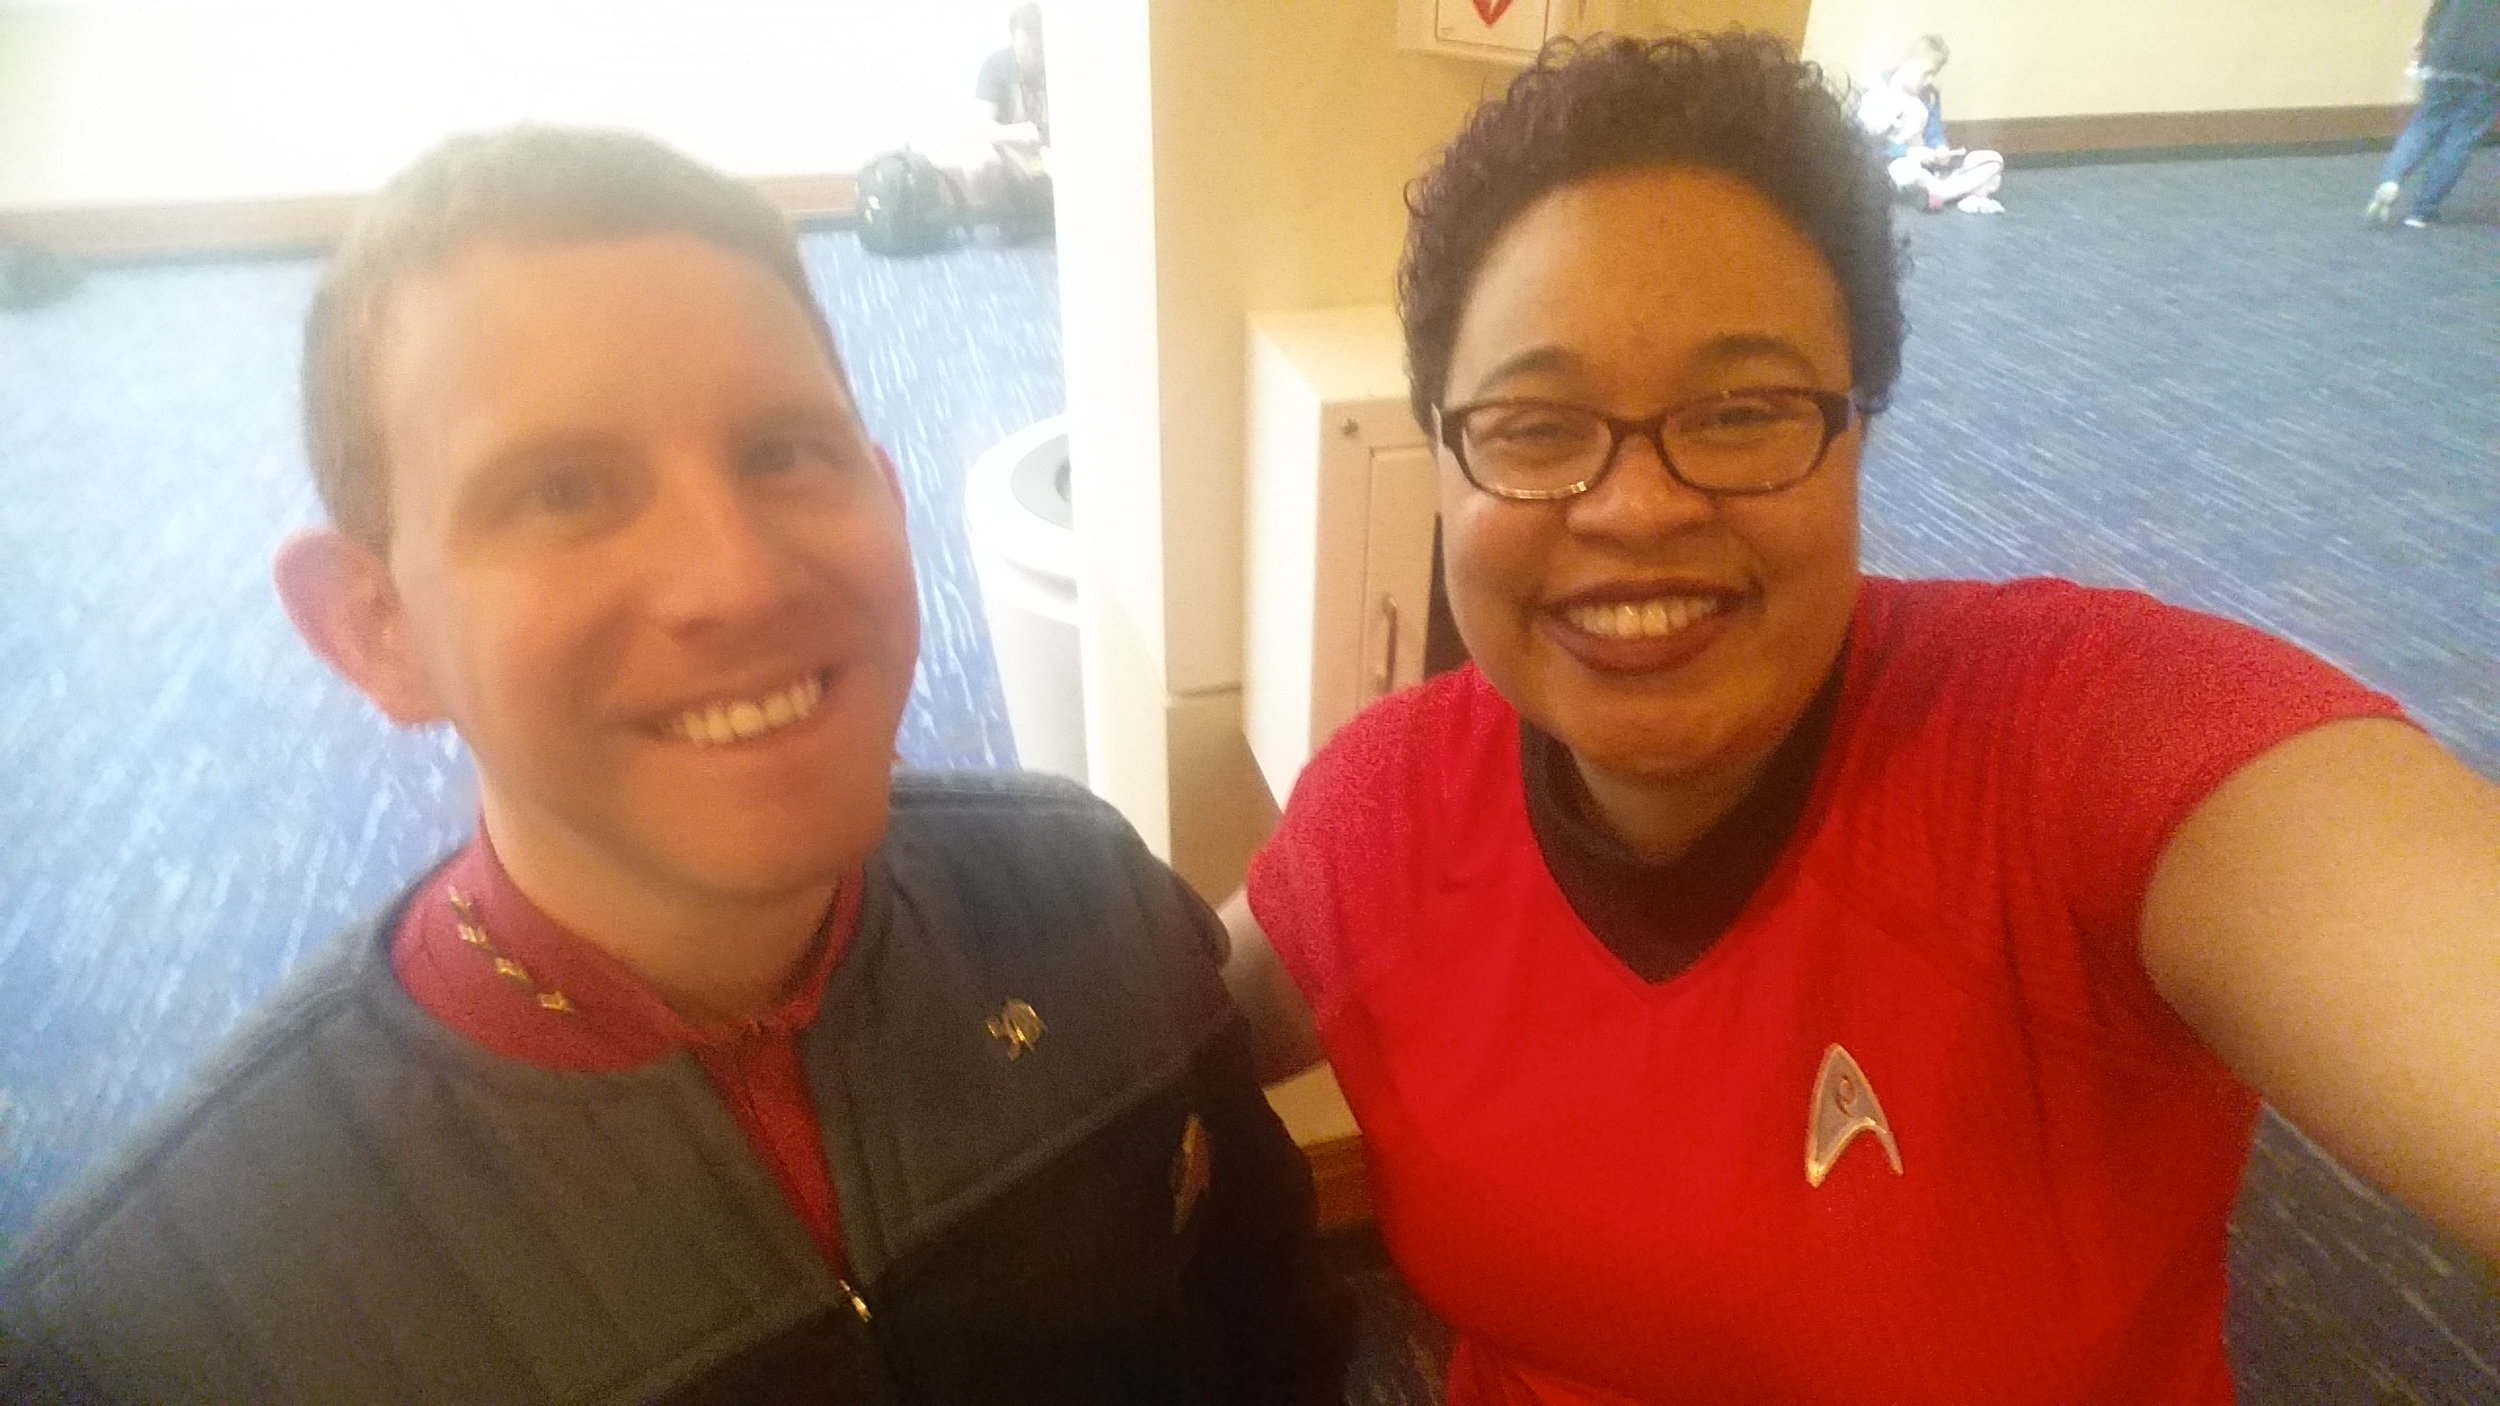 This fellow Star Trek fan and I were so excited to see each other that we decided to commemorate the occasion with a selfie!